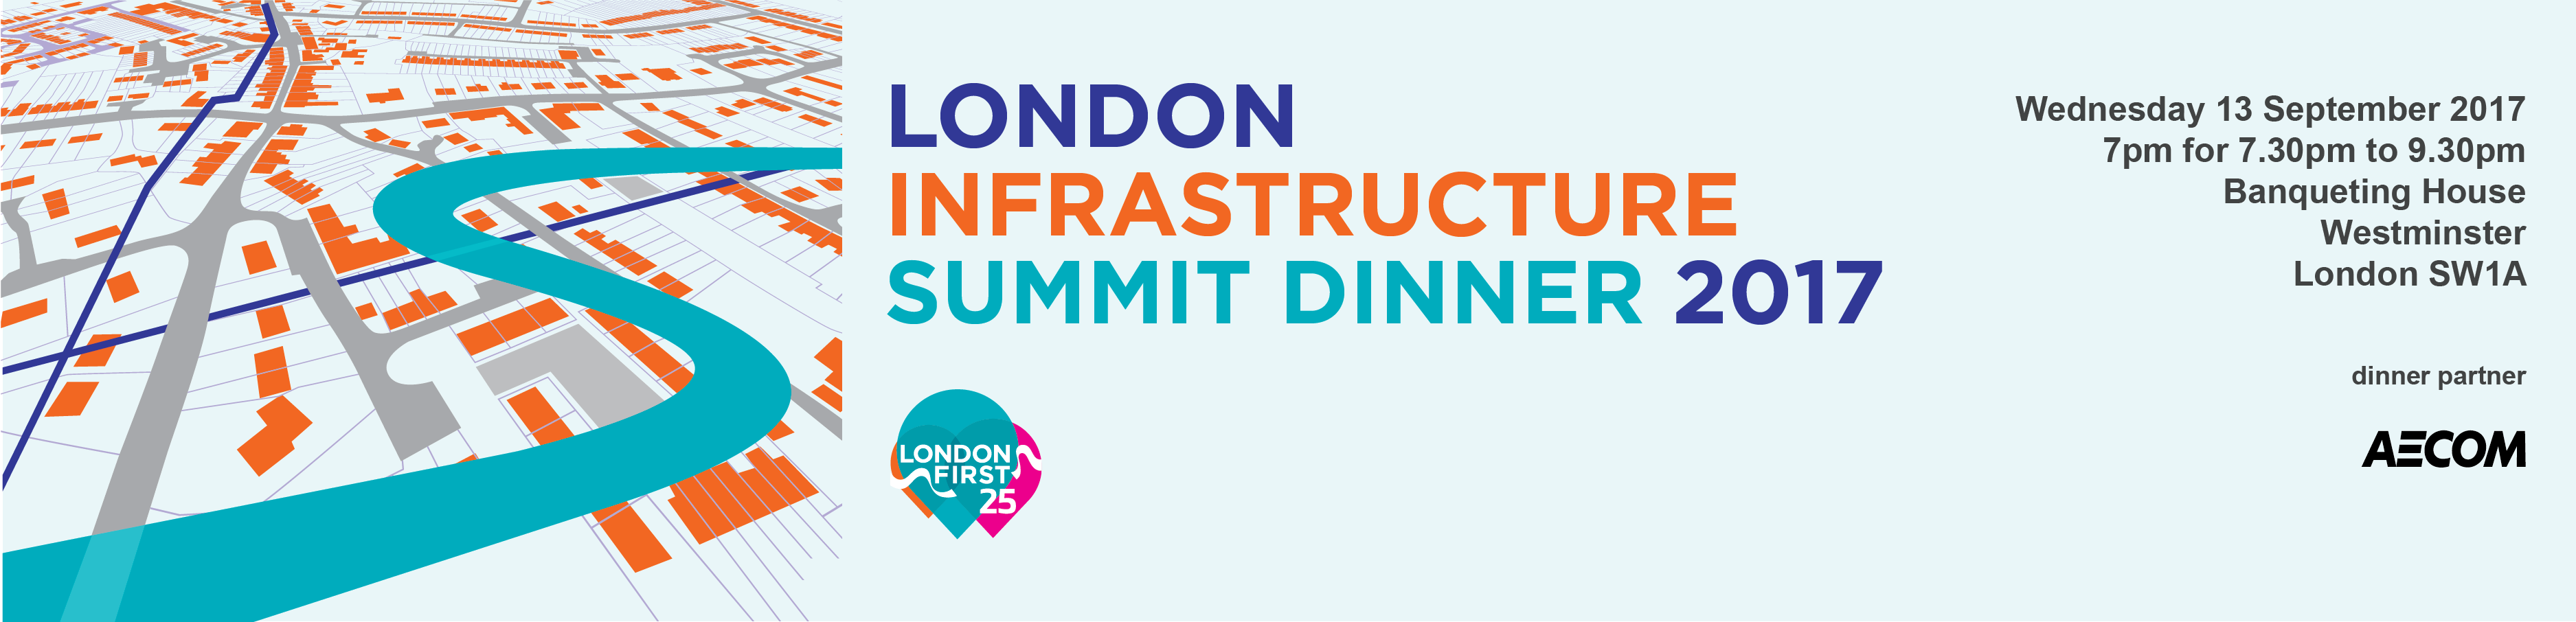 London Infrastructure Summit Dinner 2017